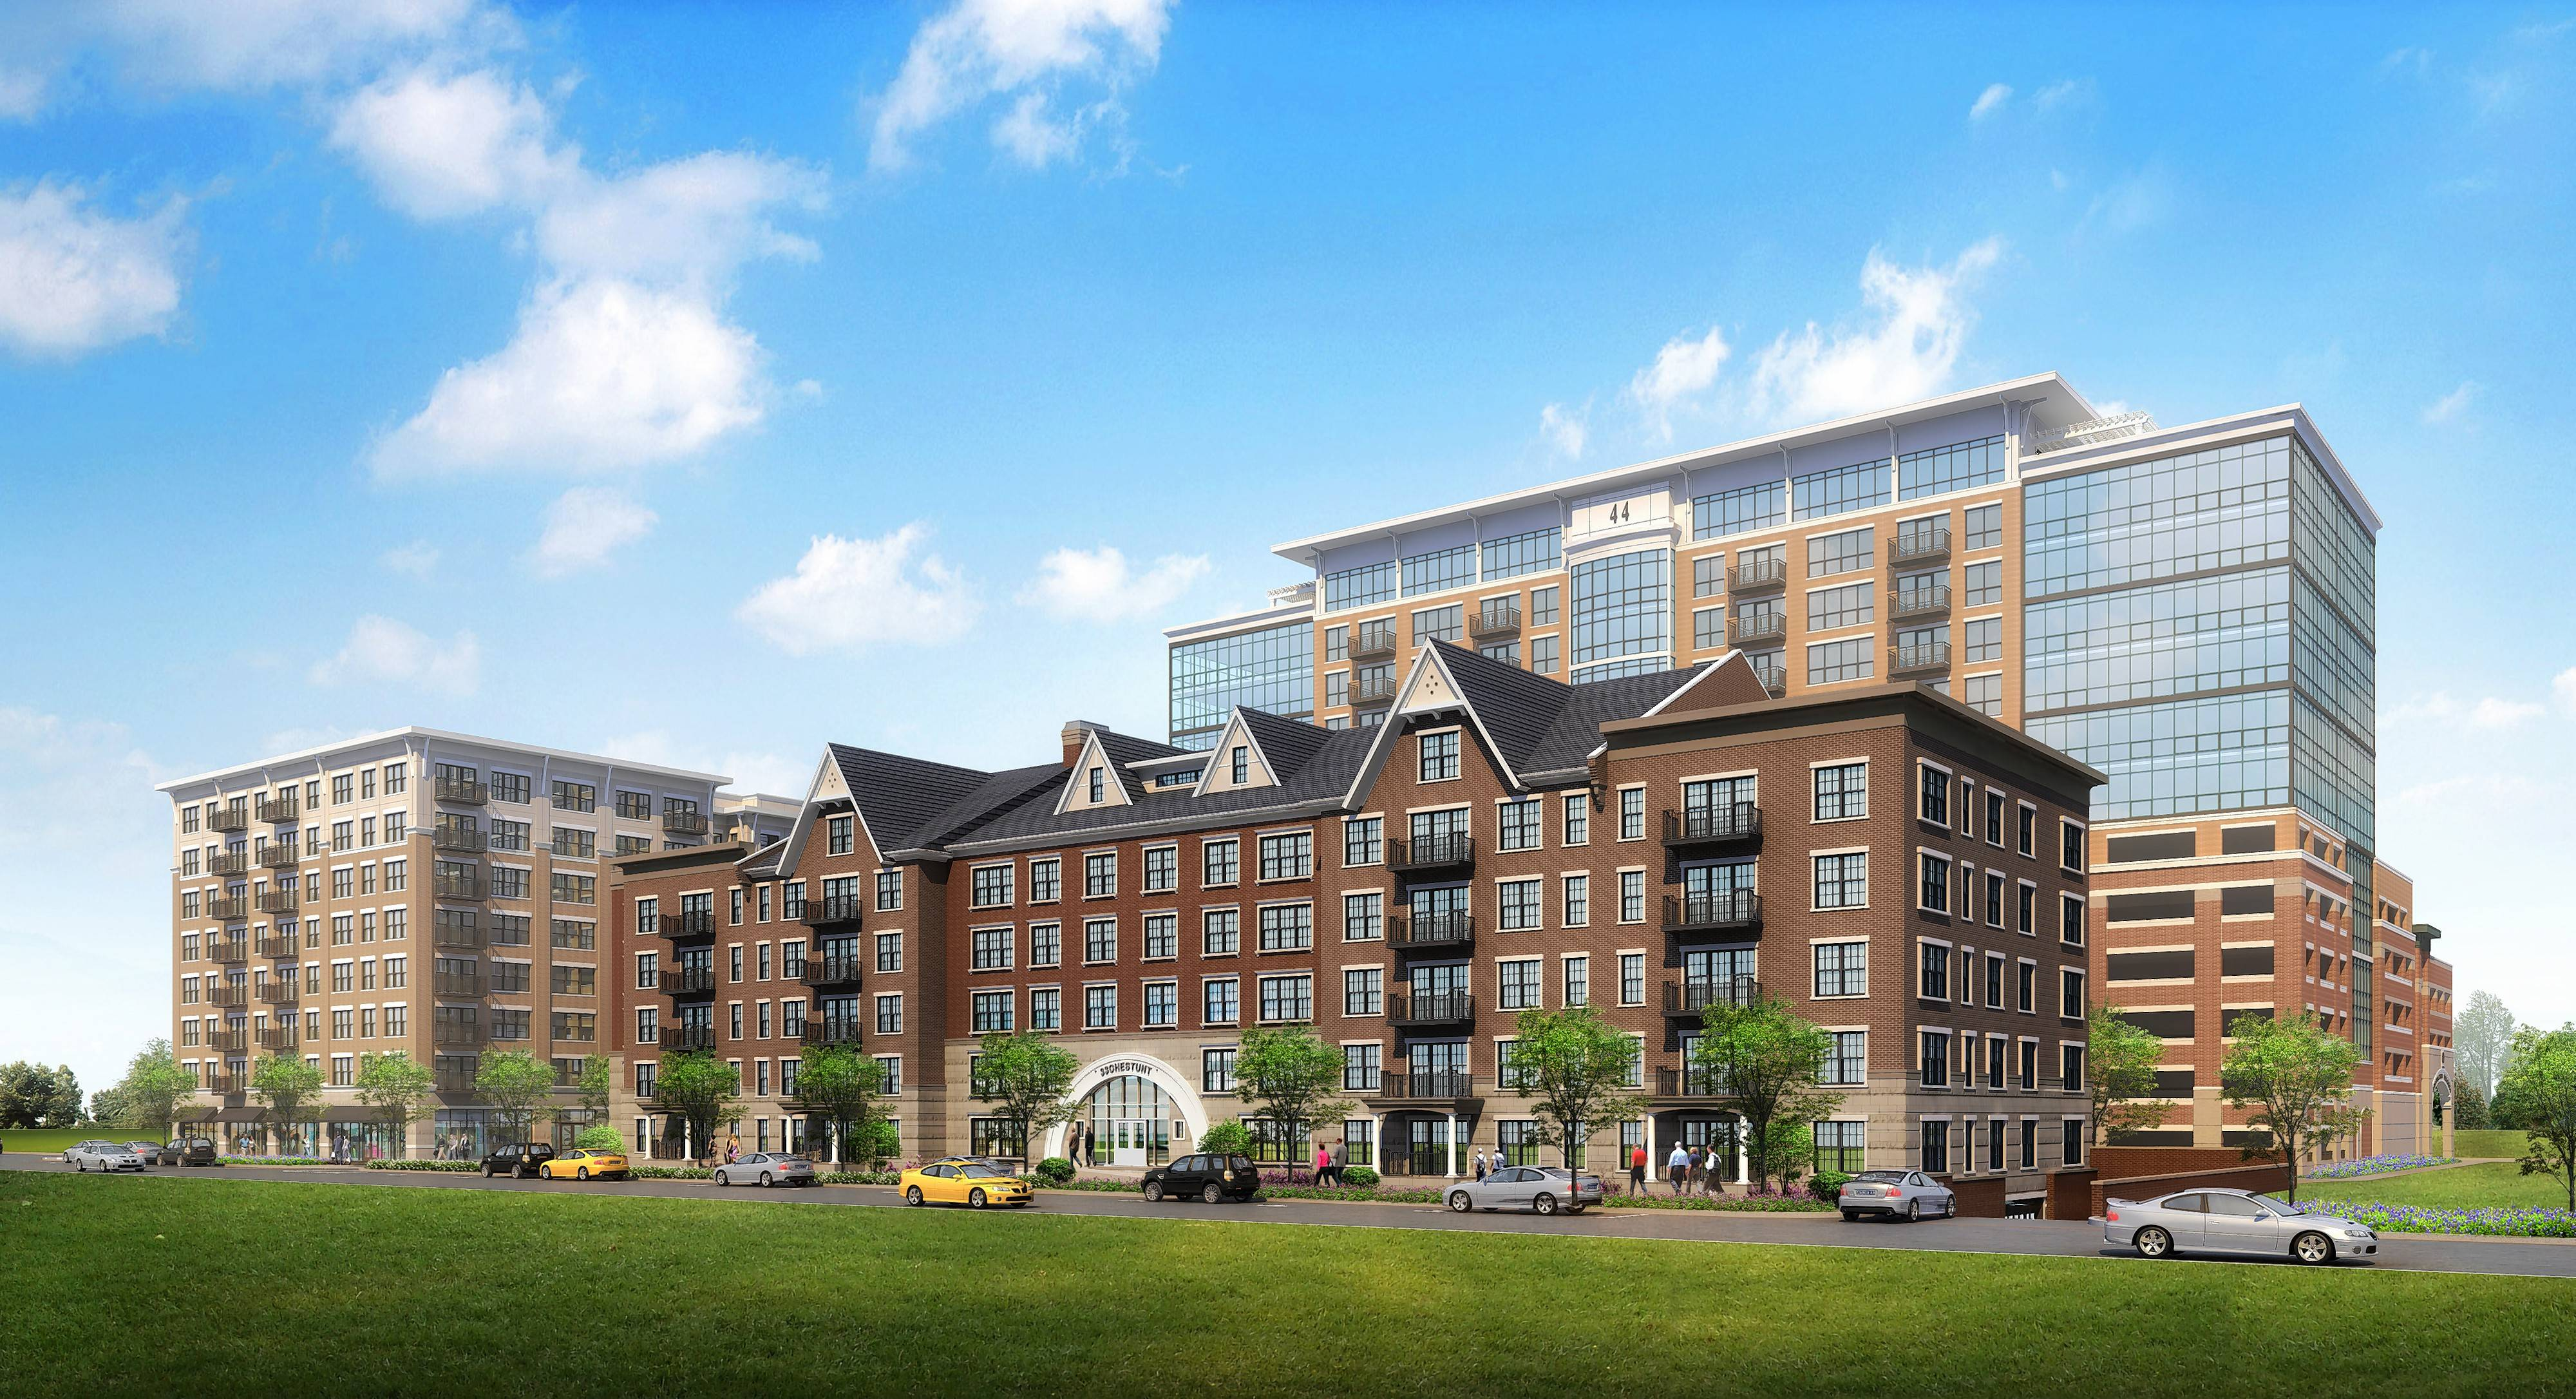 A sketch shows the proposed Arlington 425 development of three buildings featuring a mix of apartments, retail and dining on three quarters of a vacant block in downtown Arlington Heights.